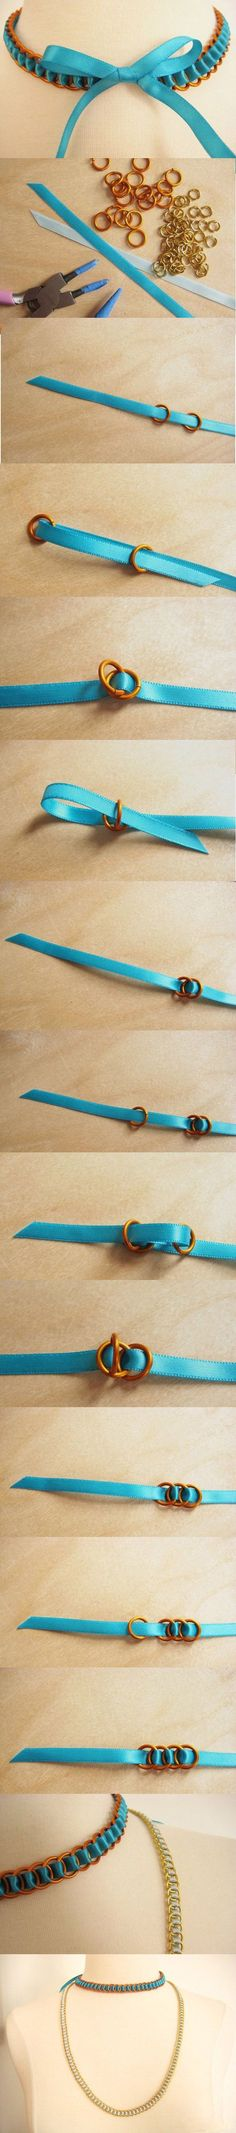 Ribbon Ring Necklace Tutorial - could make a cute bracelet too!!